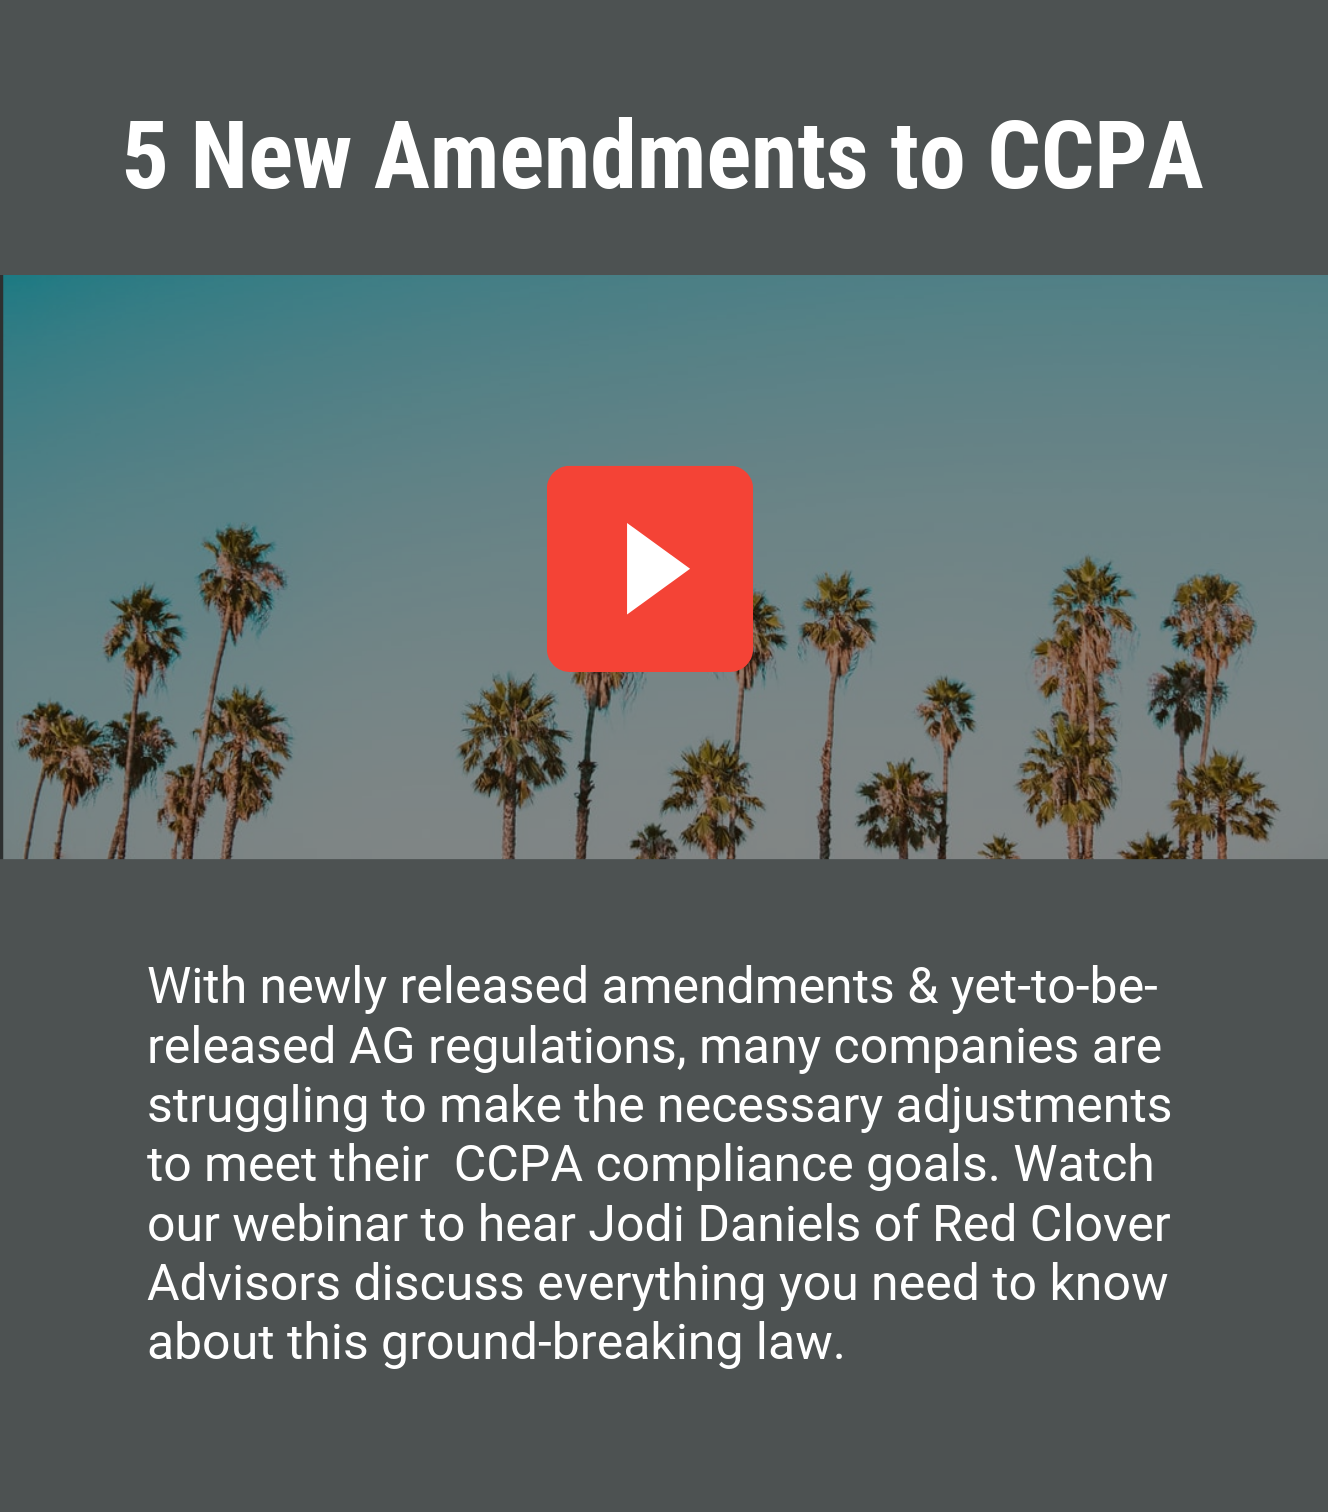 New Amendments to CCPA